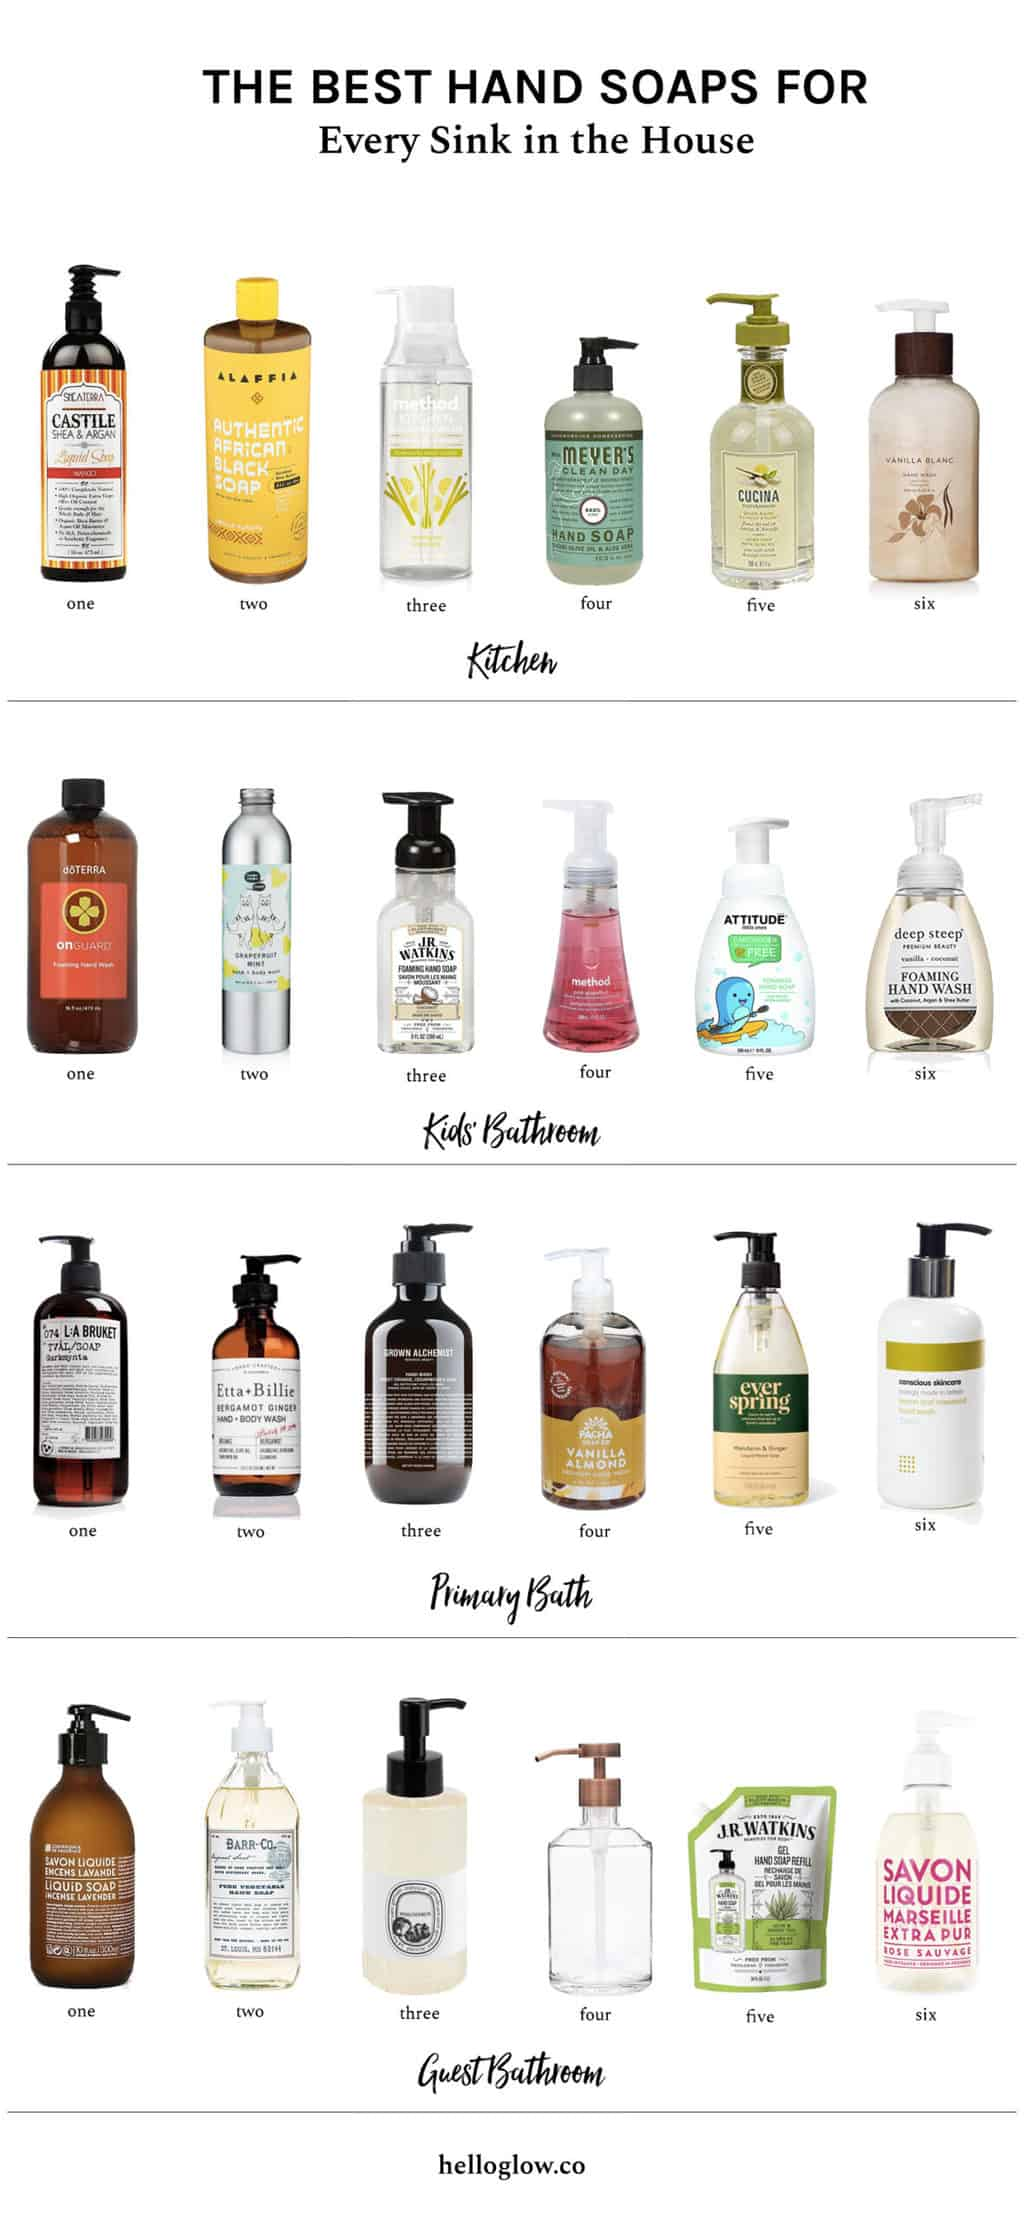 The Best Hand Soaps For Every Sink of the House